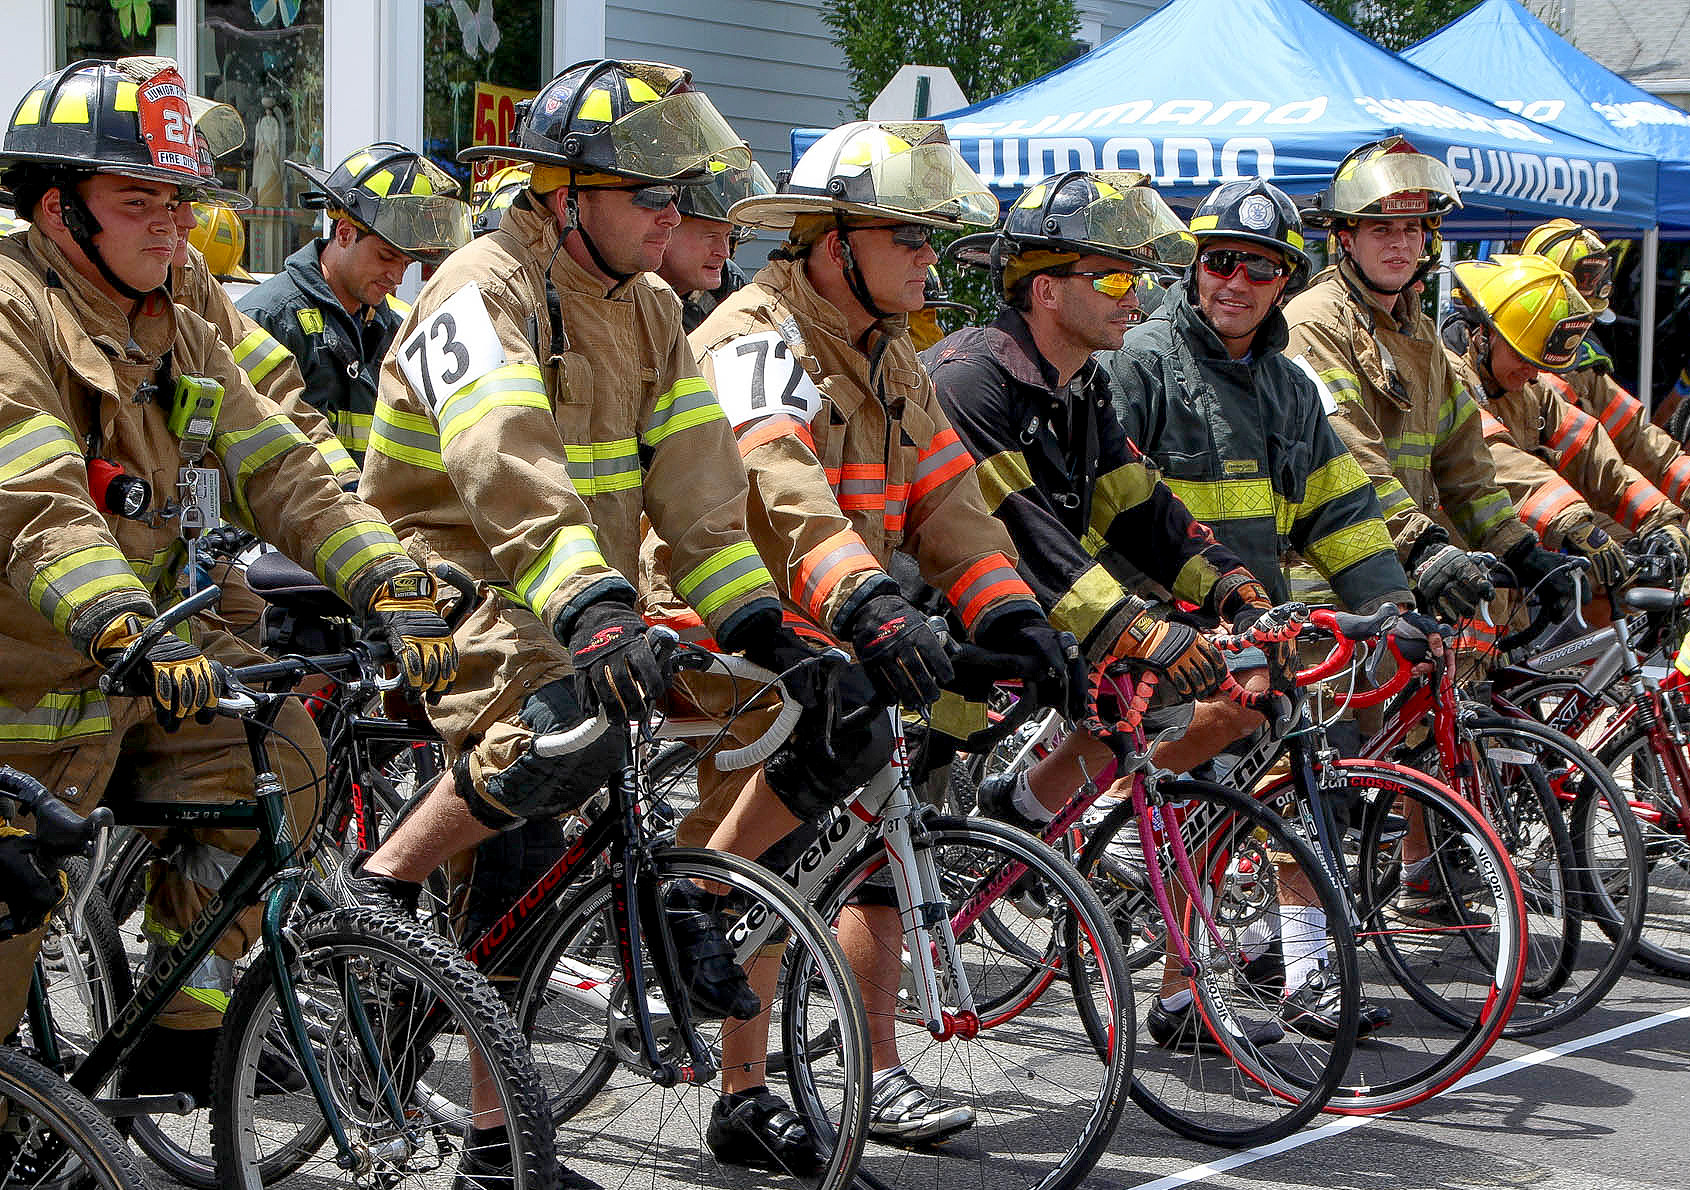 (above) Firefighters line up at starting position.